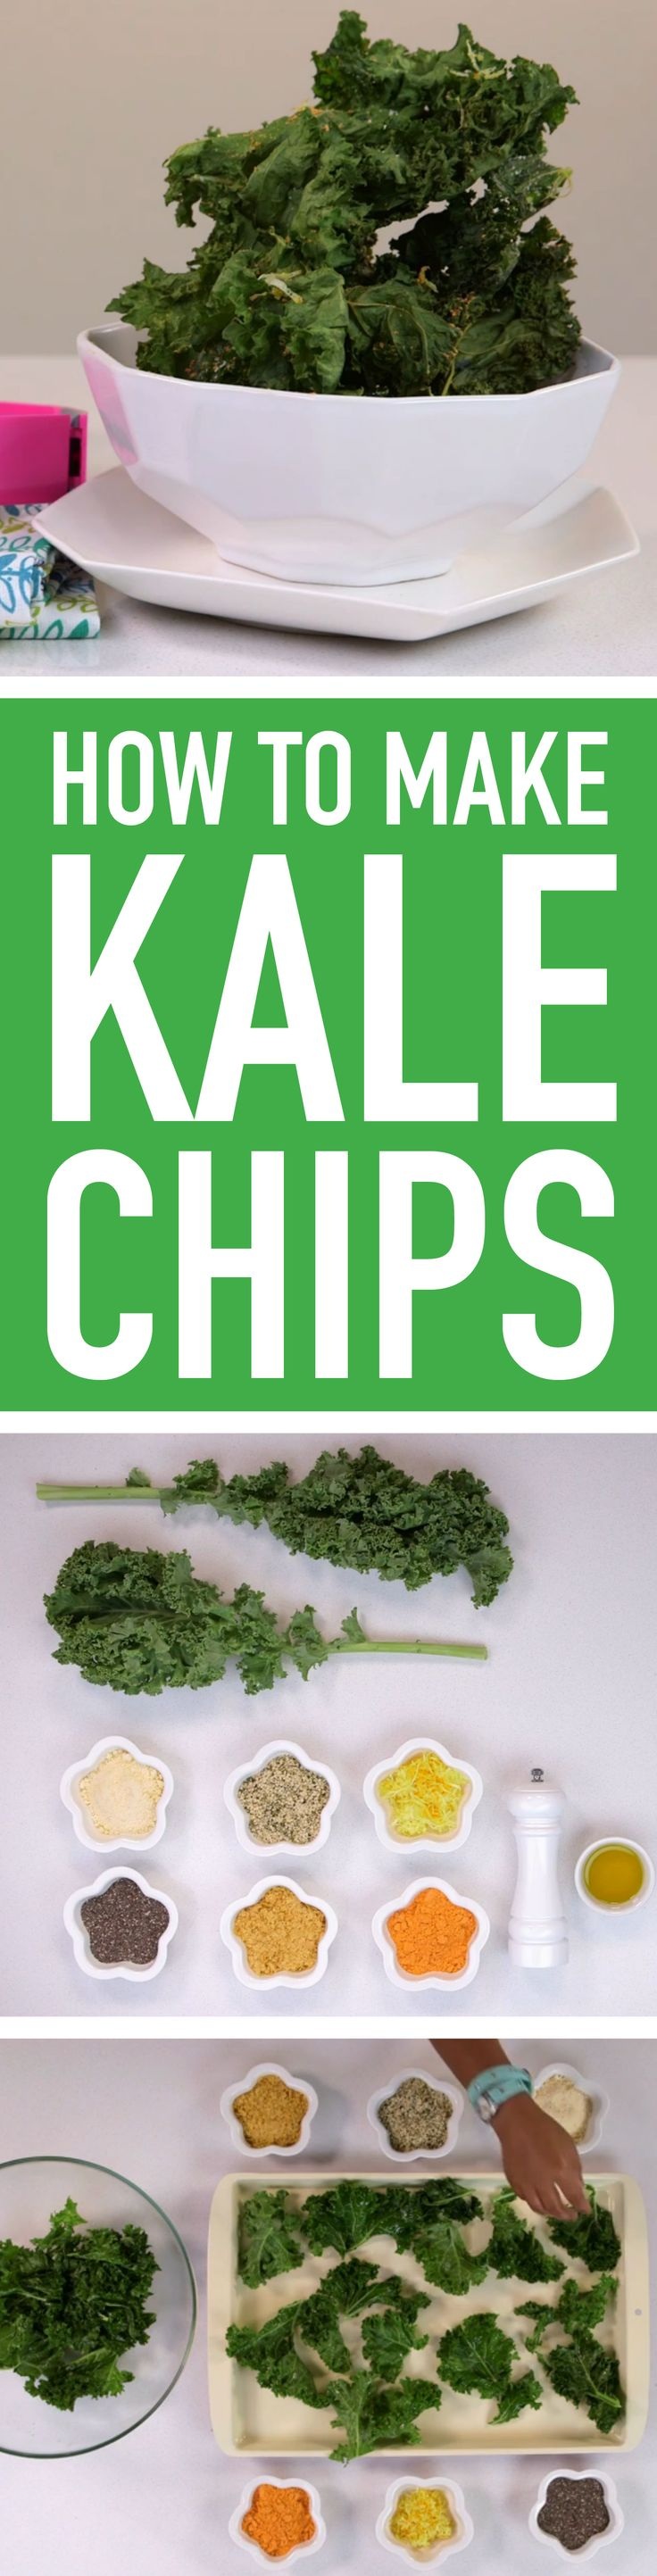 Get your kids to eat their greens by making these simple kale chips! Choose from an array of toppings to create a gourmet treat that's totally your own.